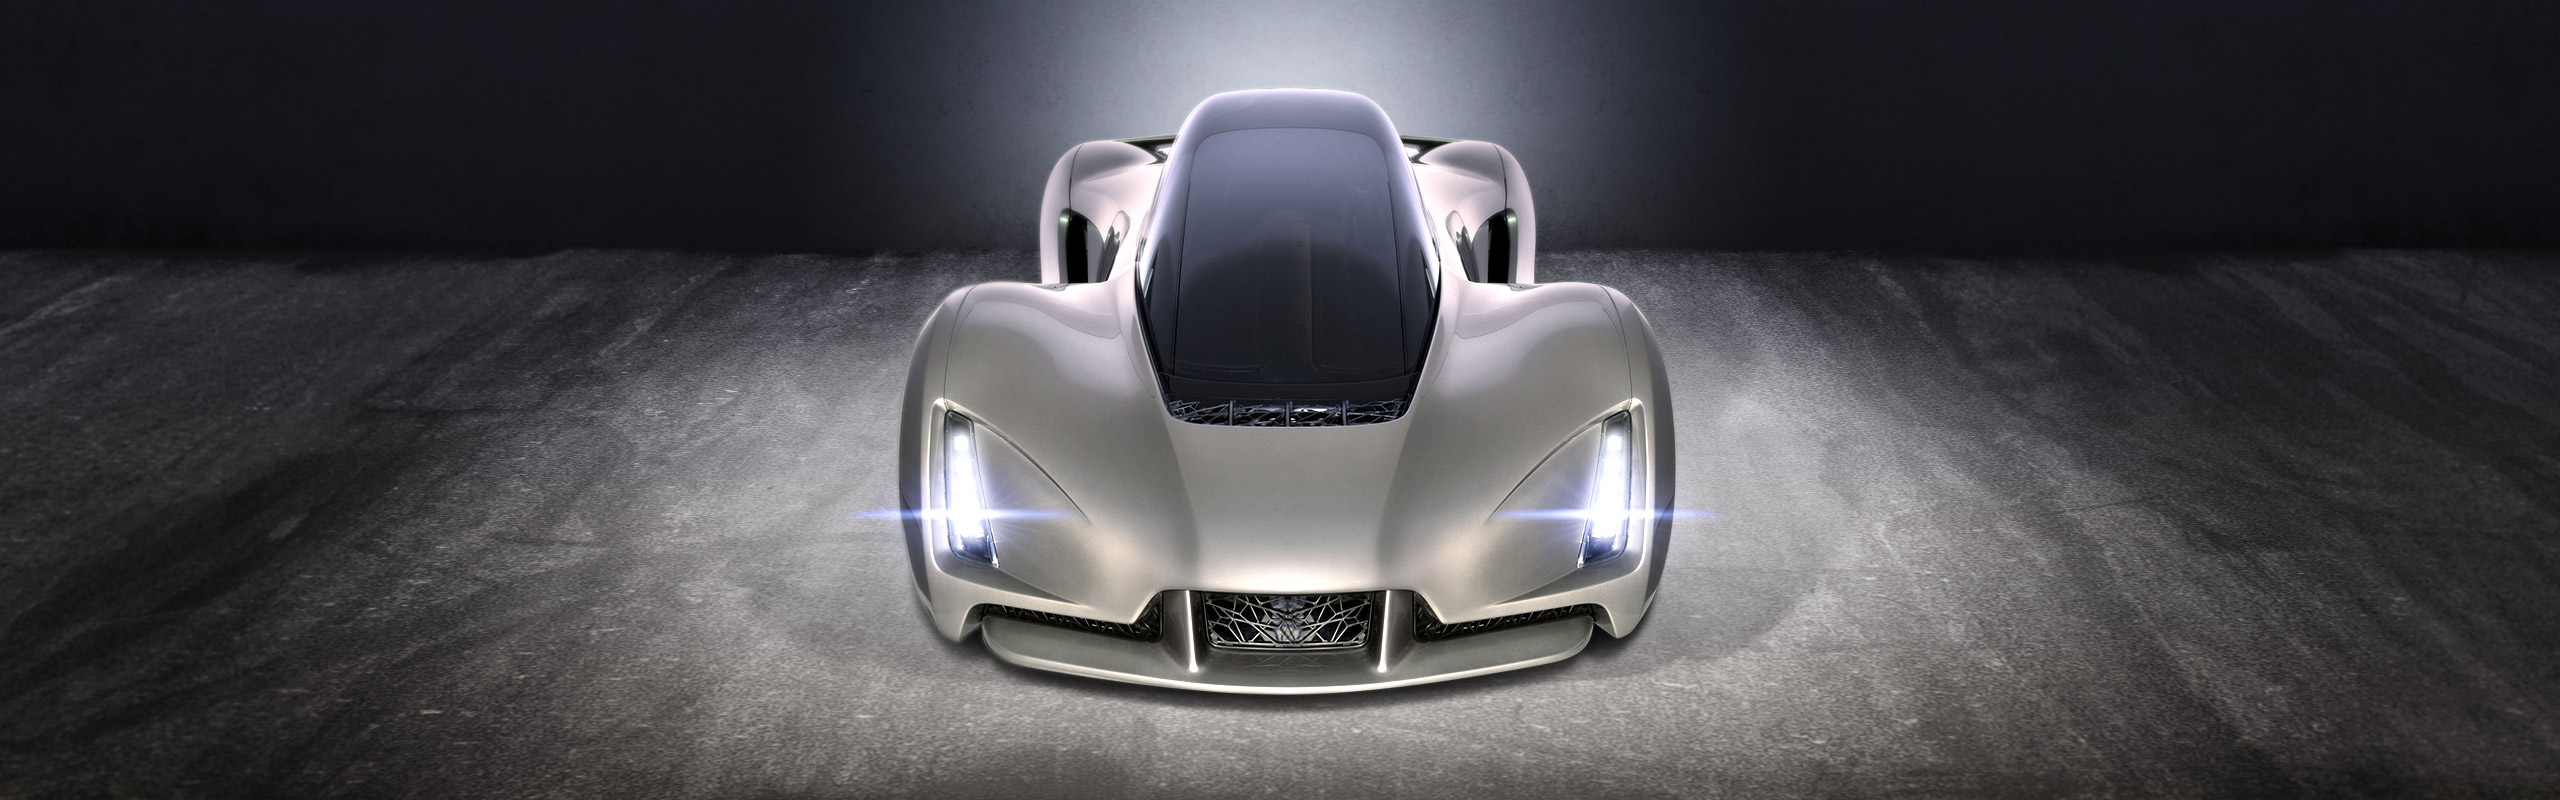 Modular Supercar Made with 3D Printing - 3D Printing Industry